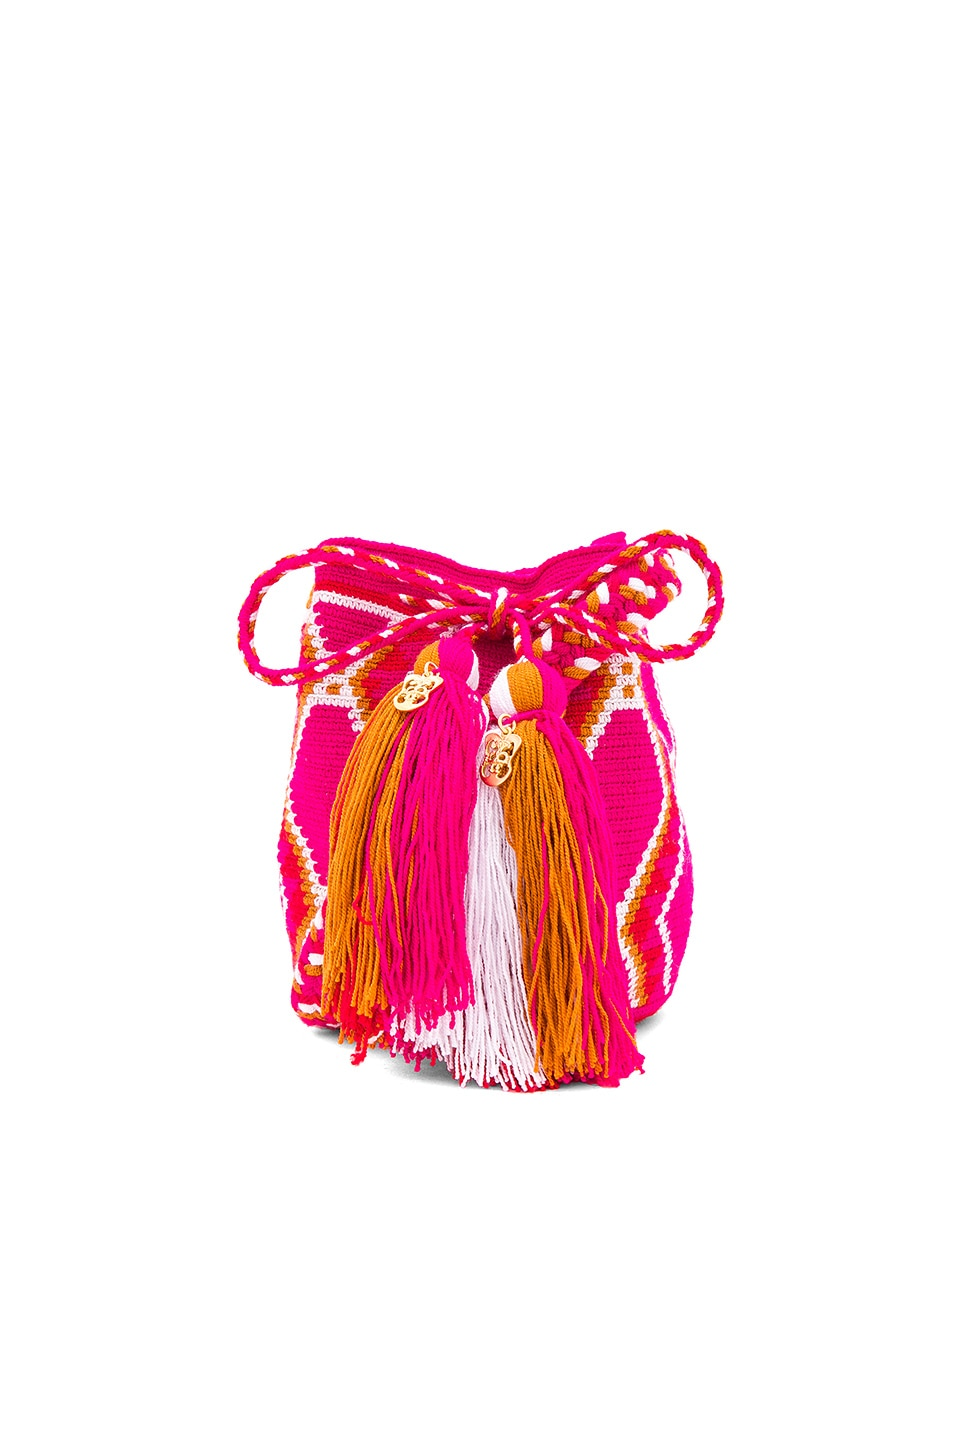 the way u Mini Mochila Bucket Bag in Panther